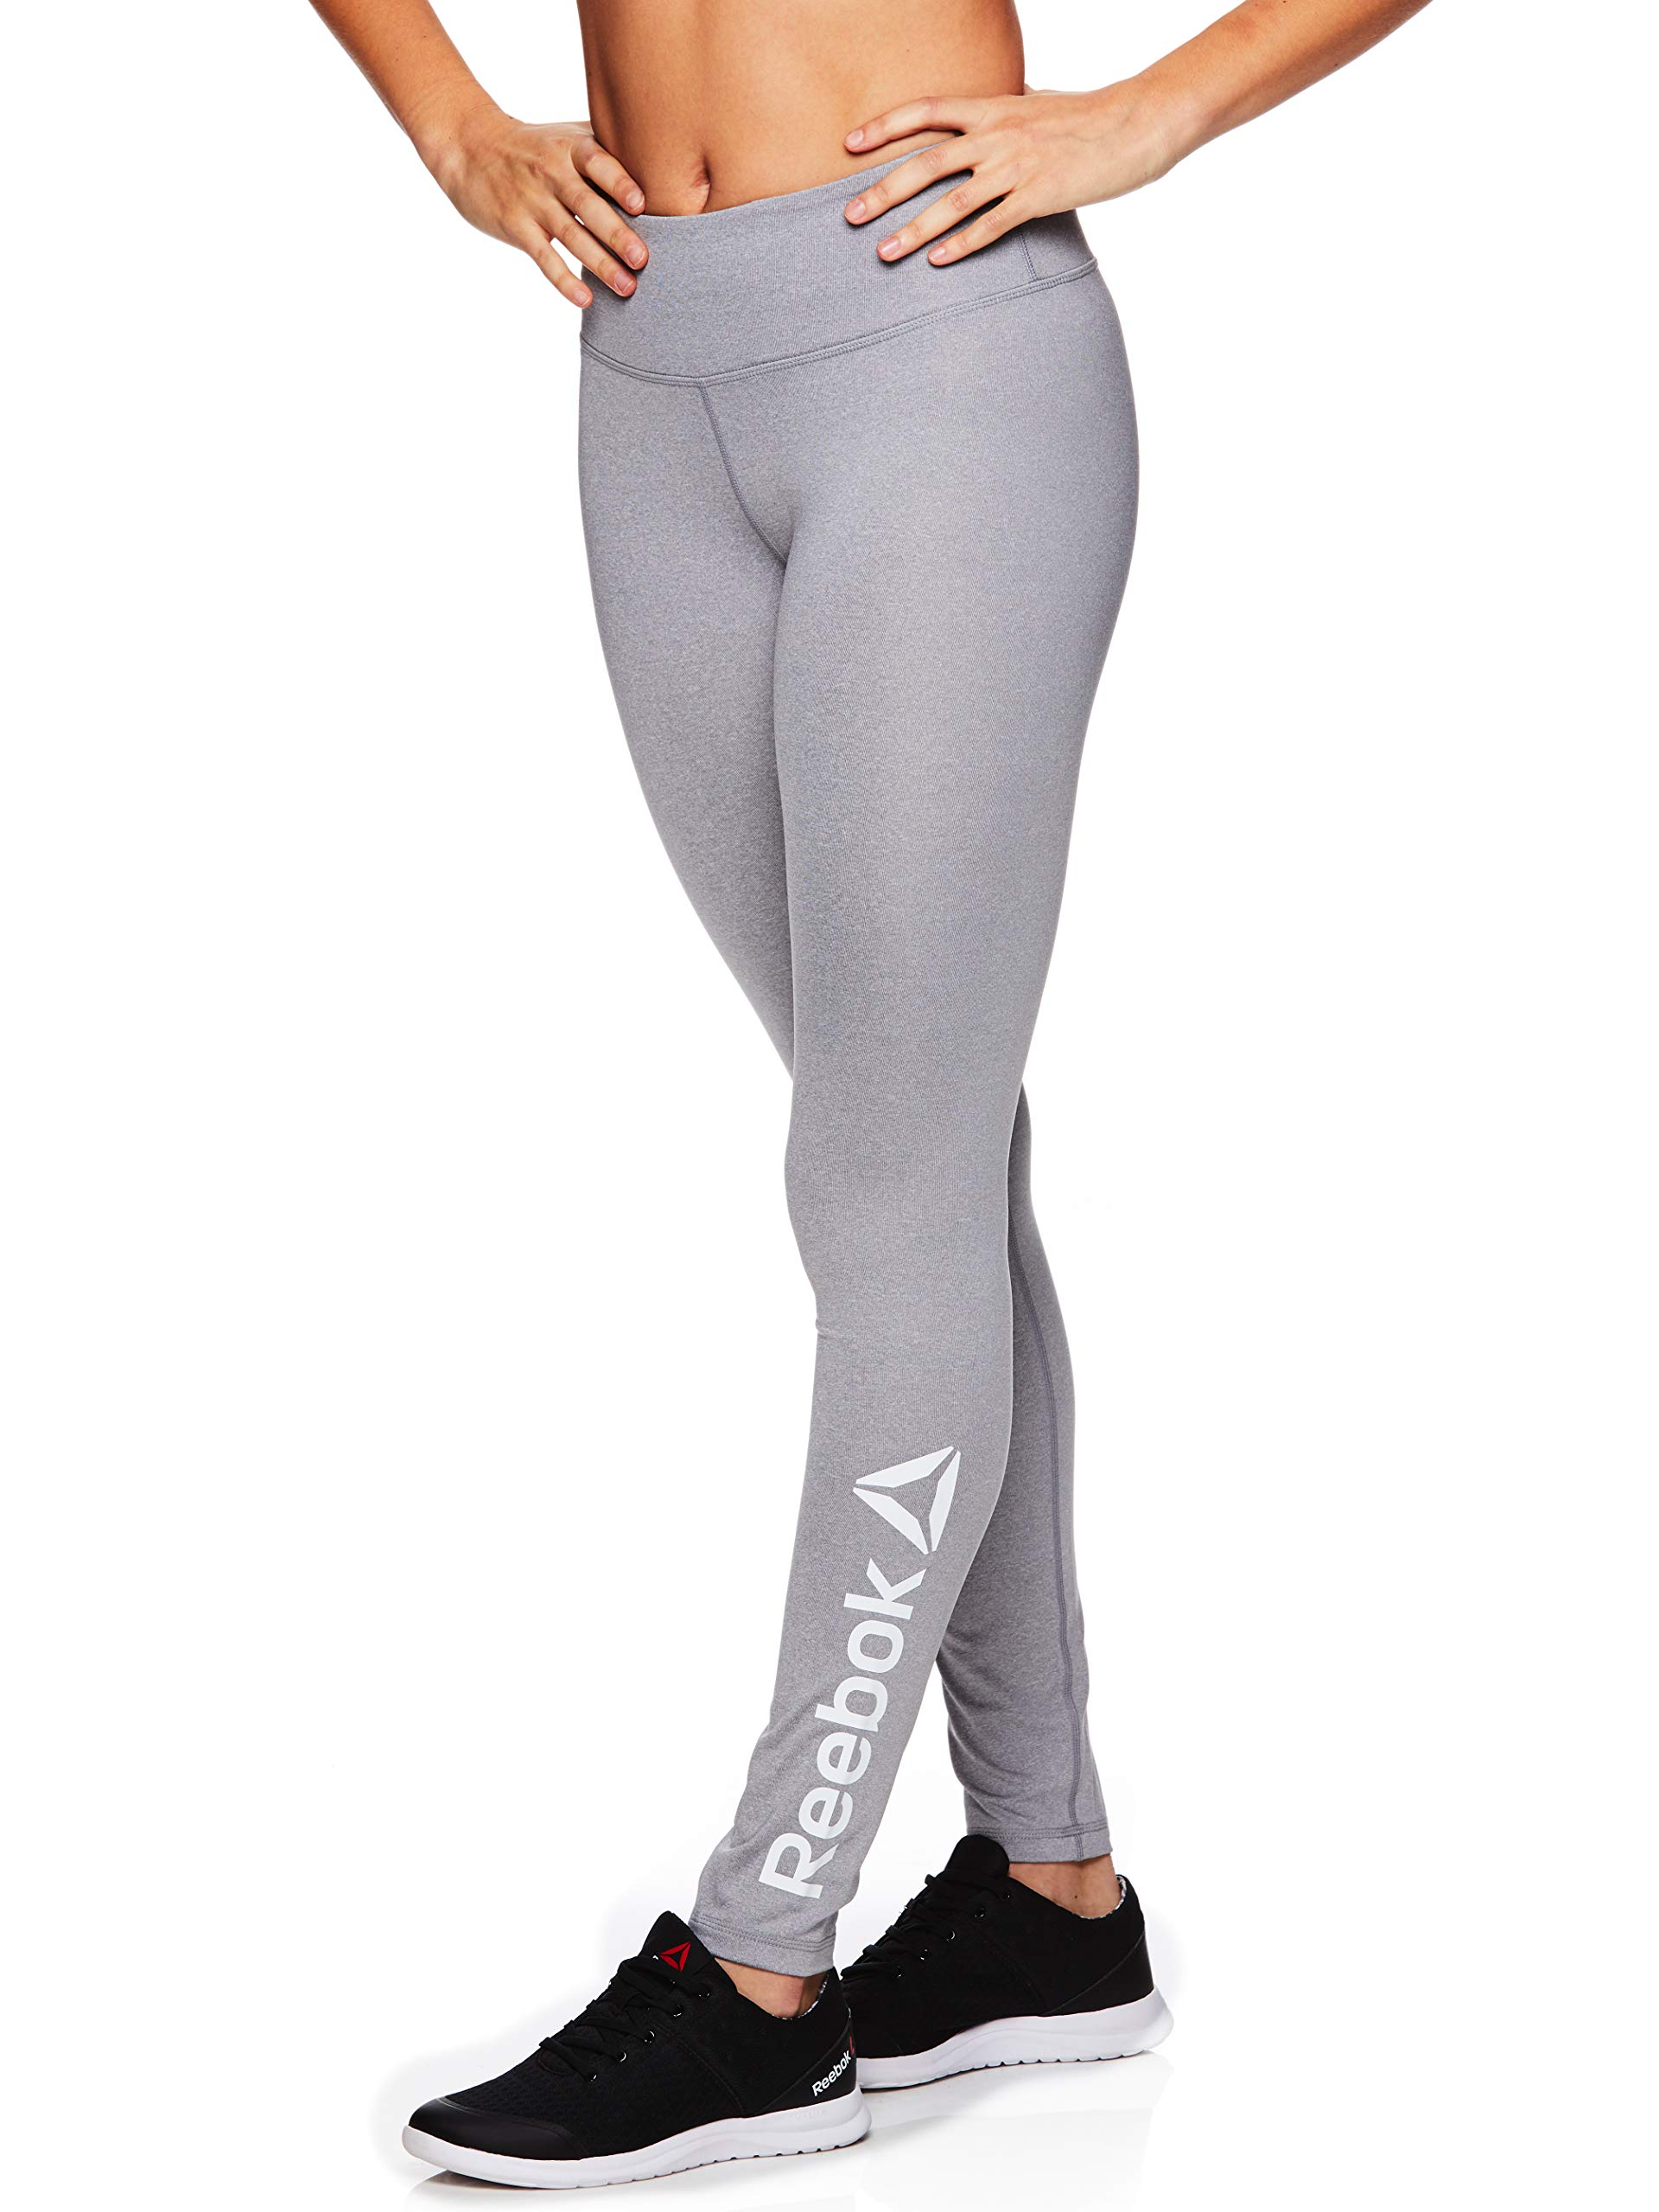 Reebok Women's Legging Full Length Performance Compression Pants - Grey Day Heather, Small by Reebok